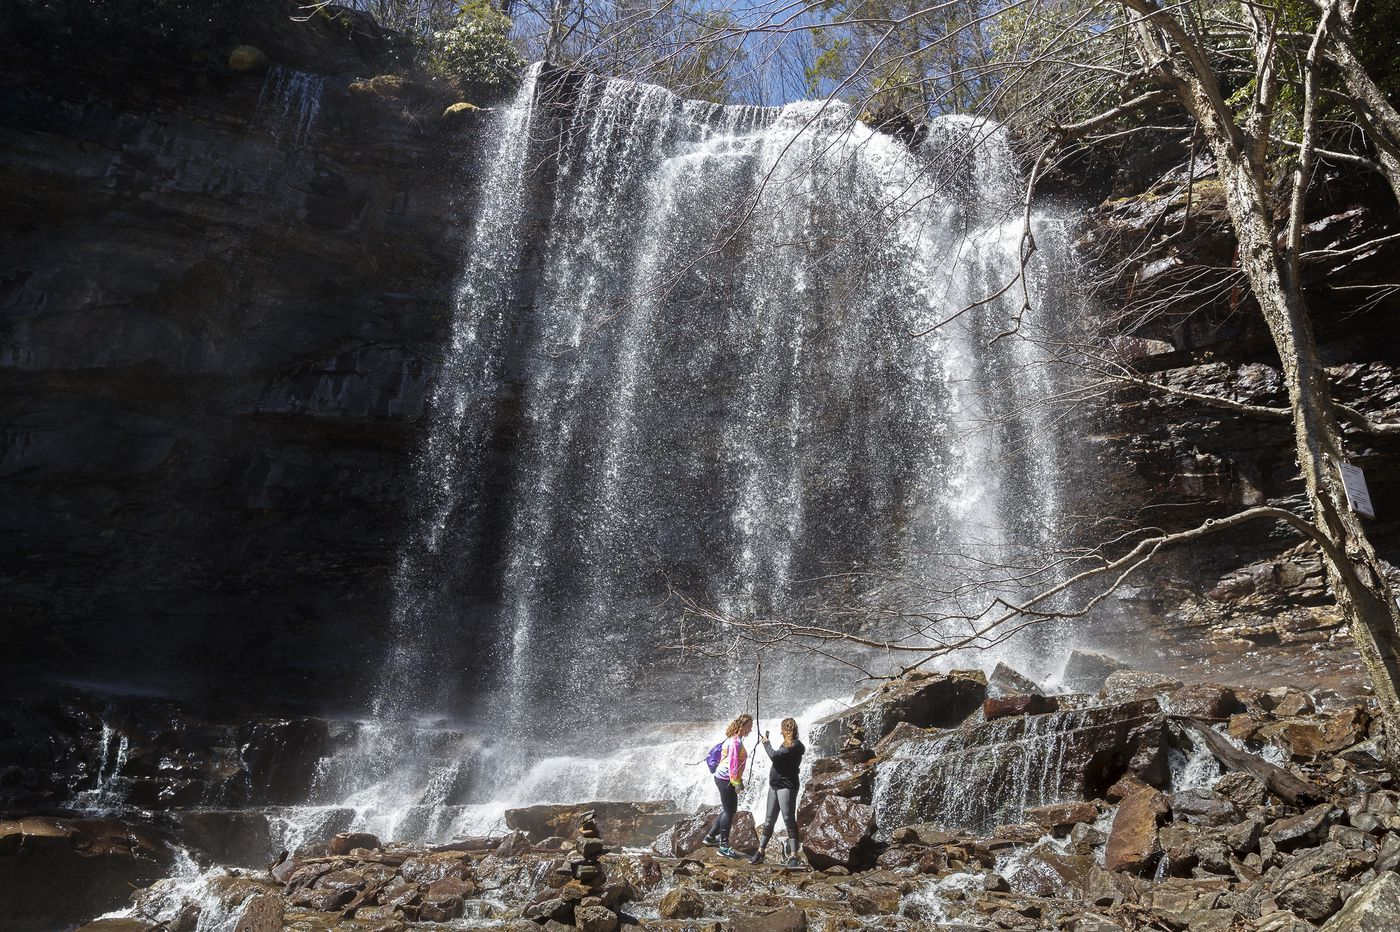 Danger, beauty, and grief at the end of Carbon County's Glen Onoko Falls trail